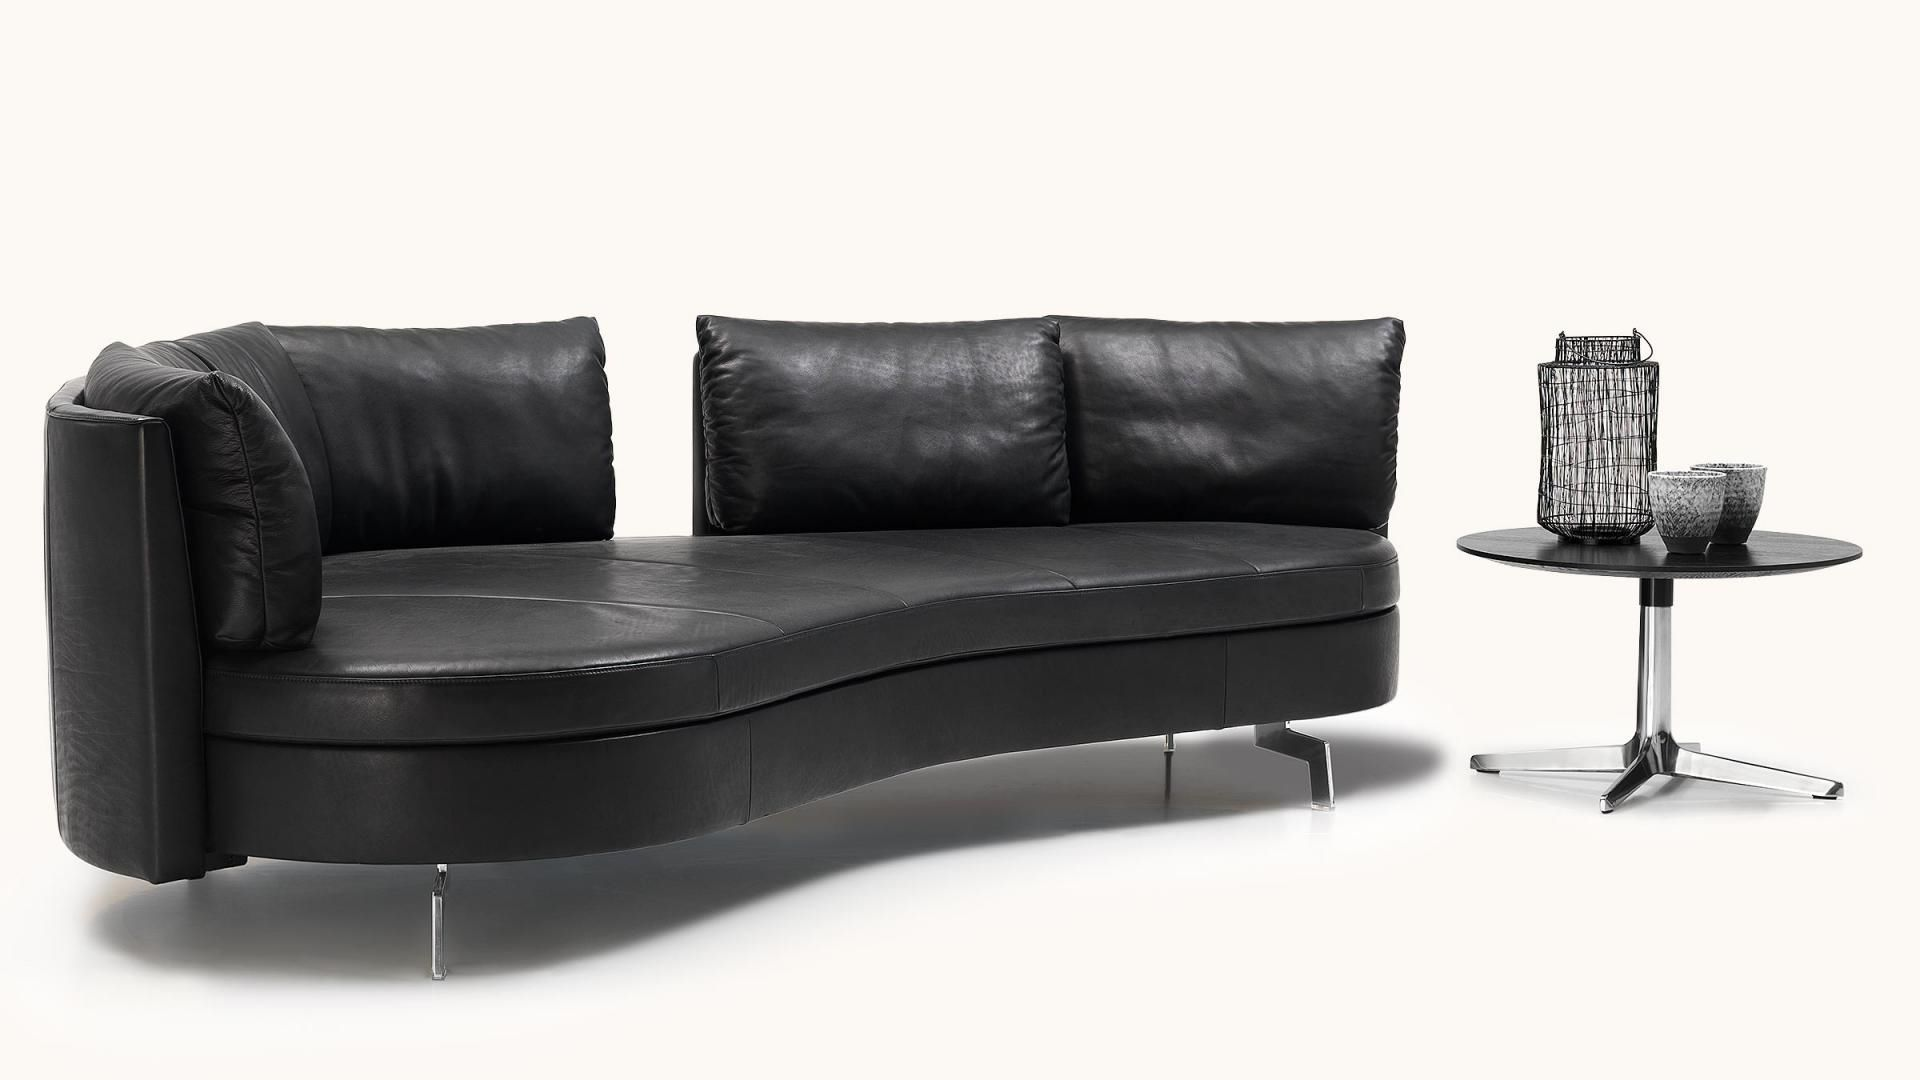 semicircular sofa modular contemporary leather. Black Bedroom Furniture Sets. Home Design Ideas